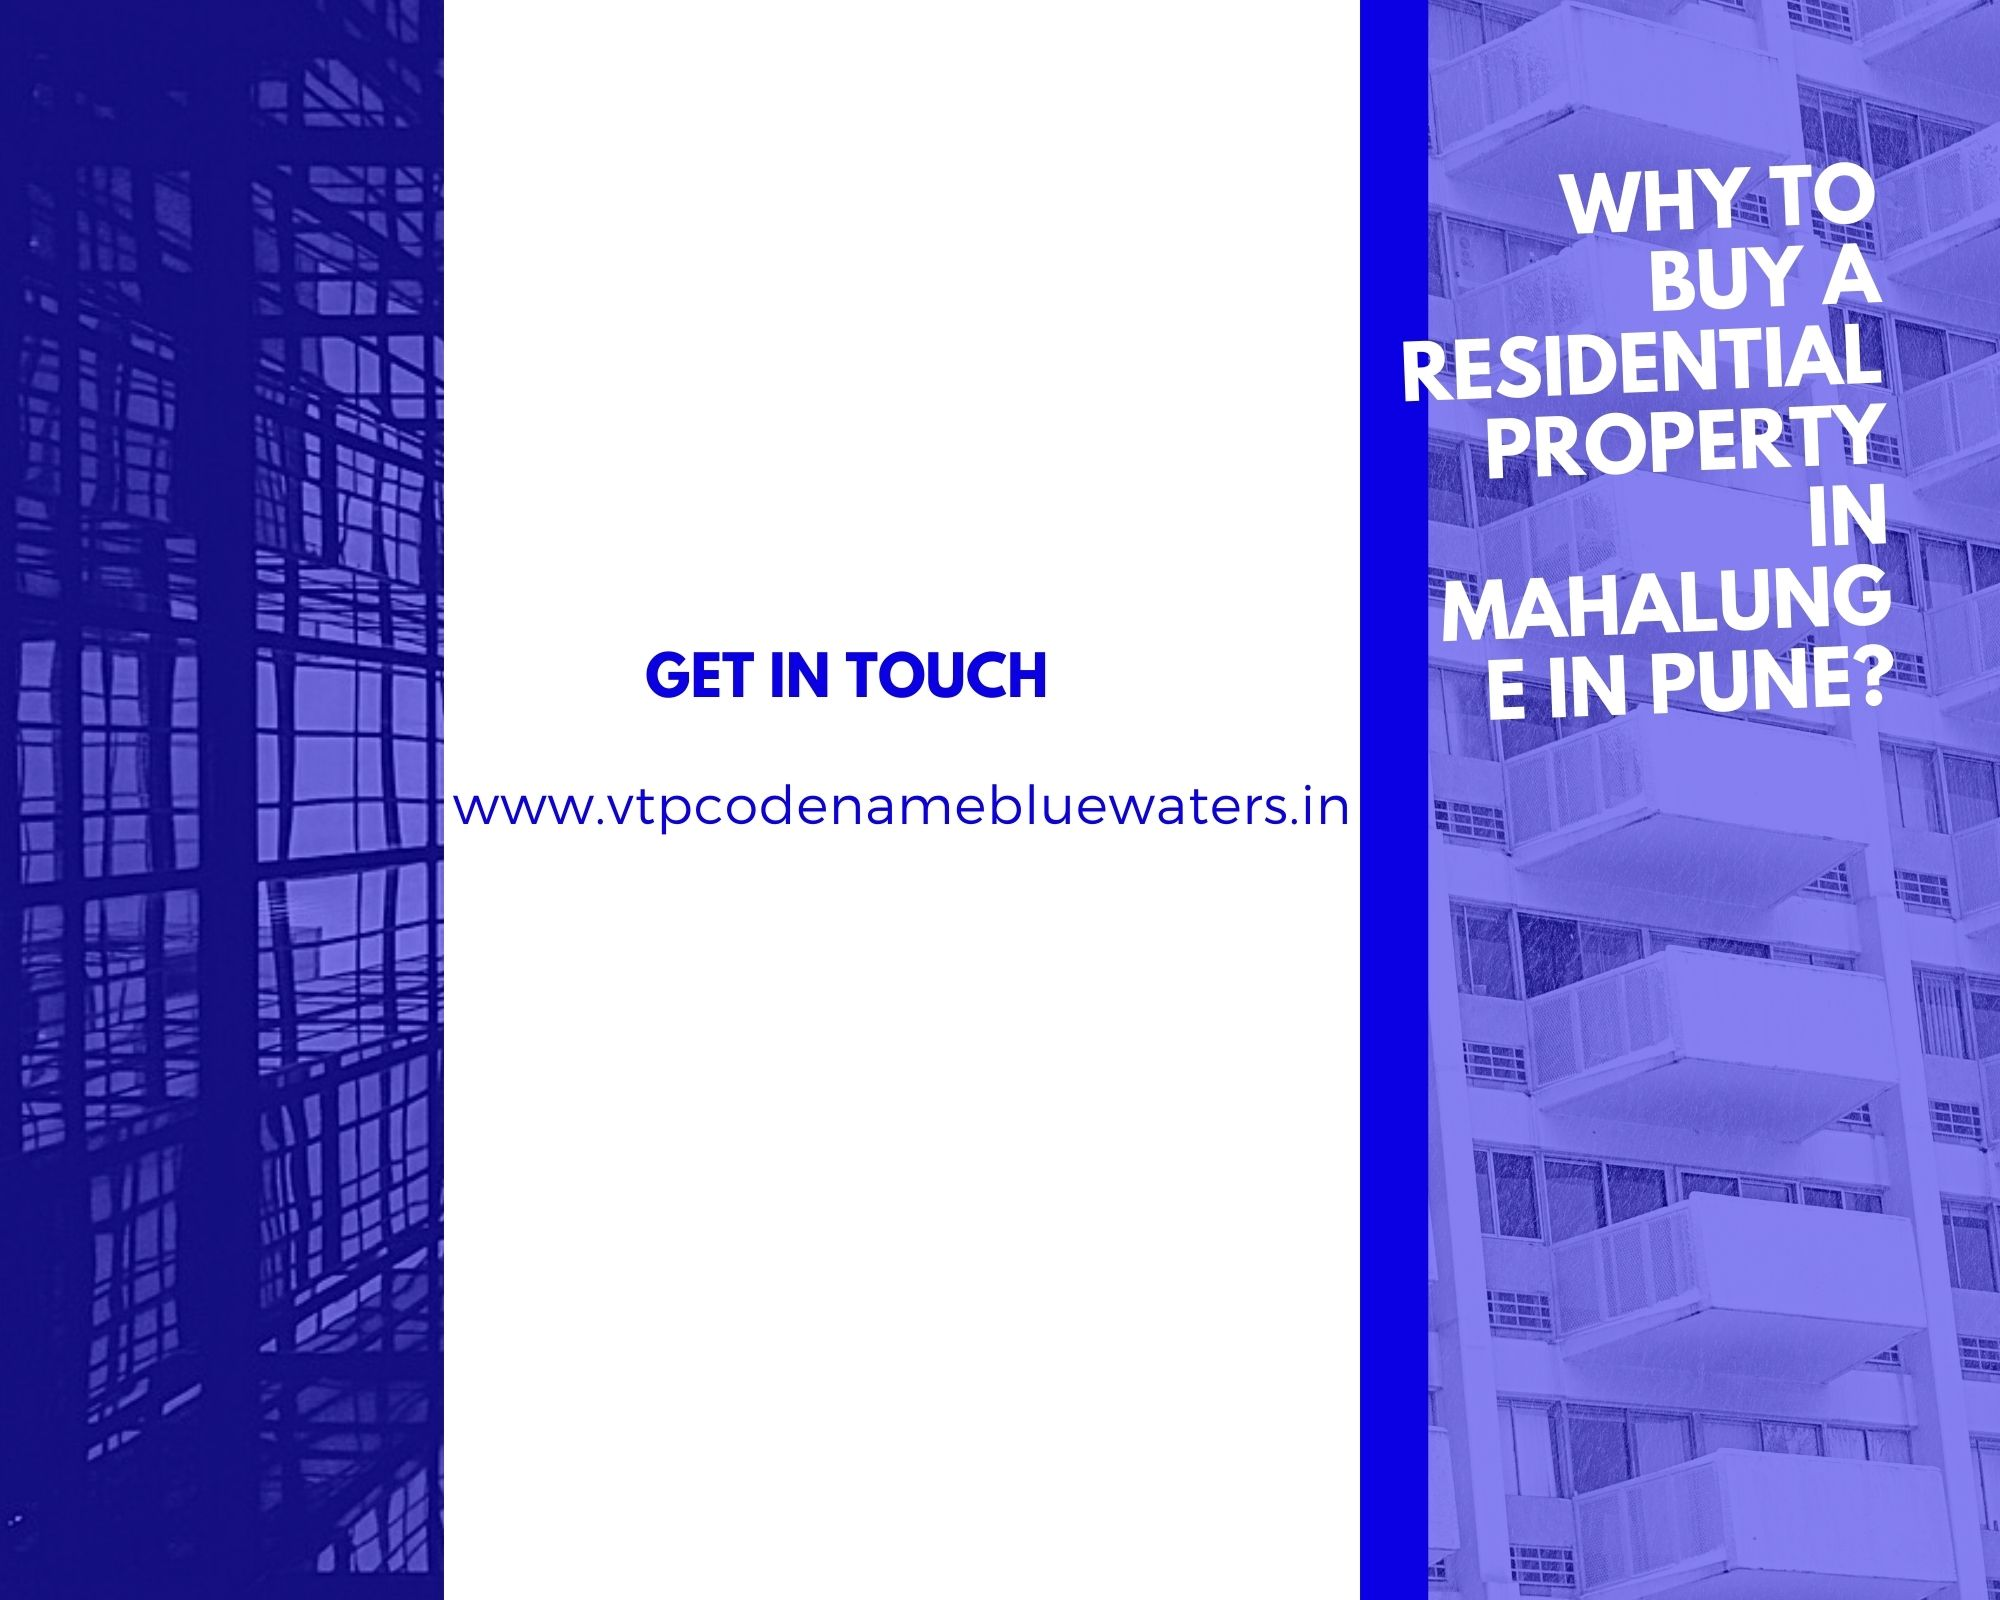 Why to buy a residential property in Mahalunge in Pune?